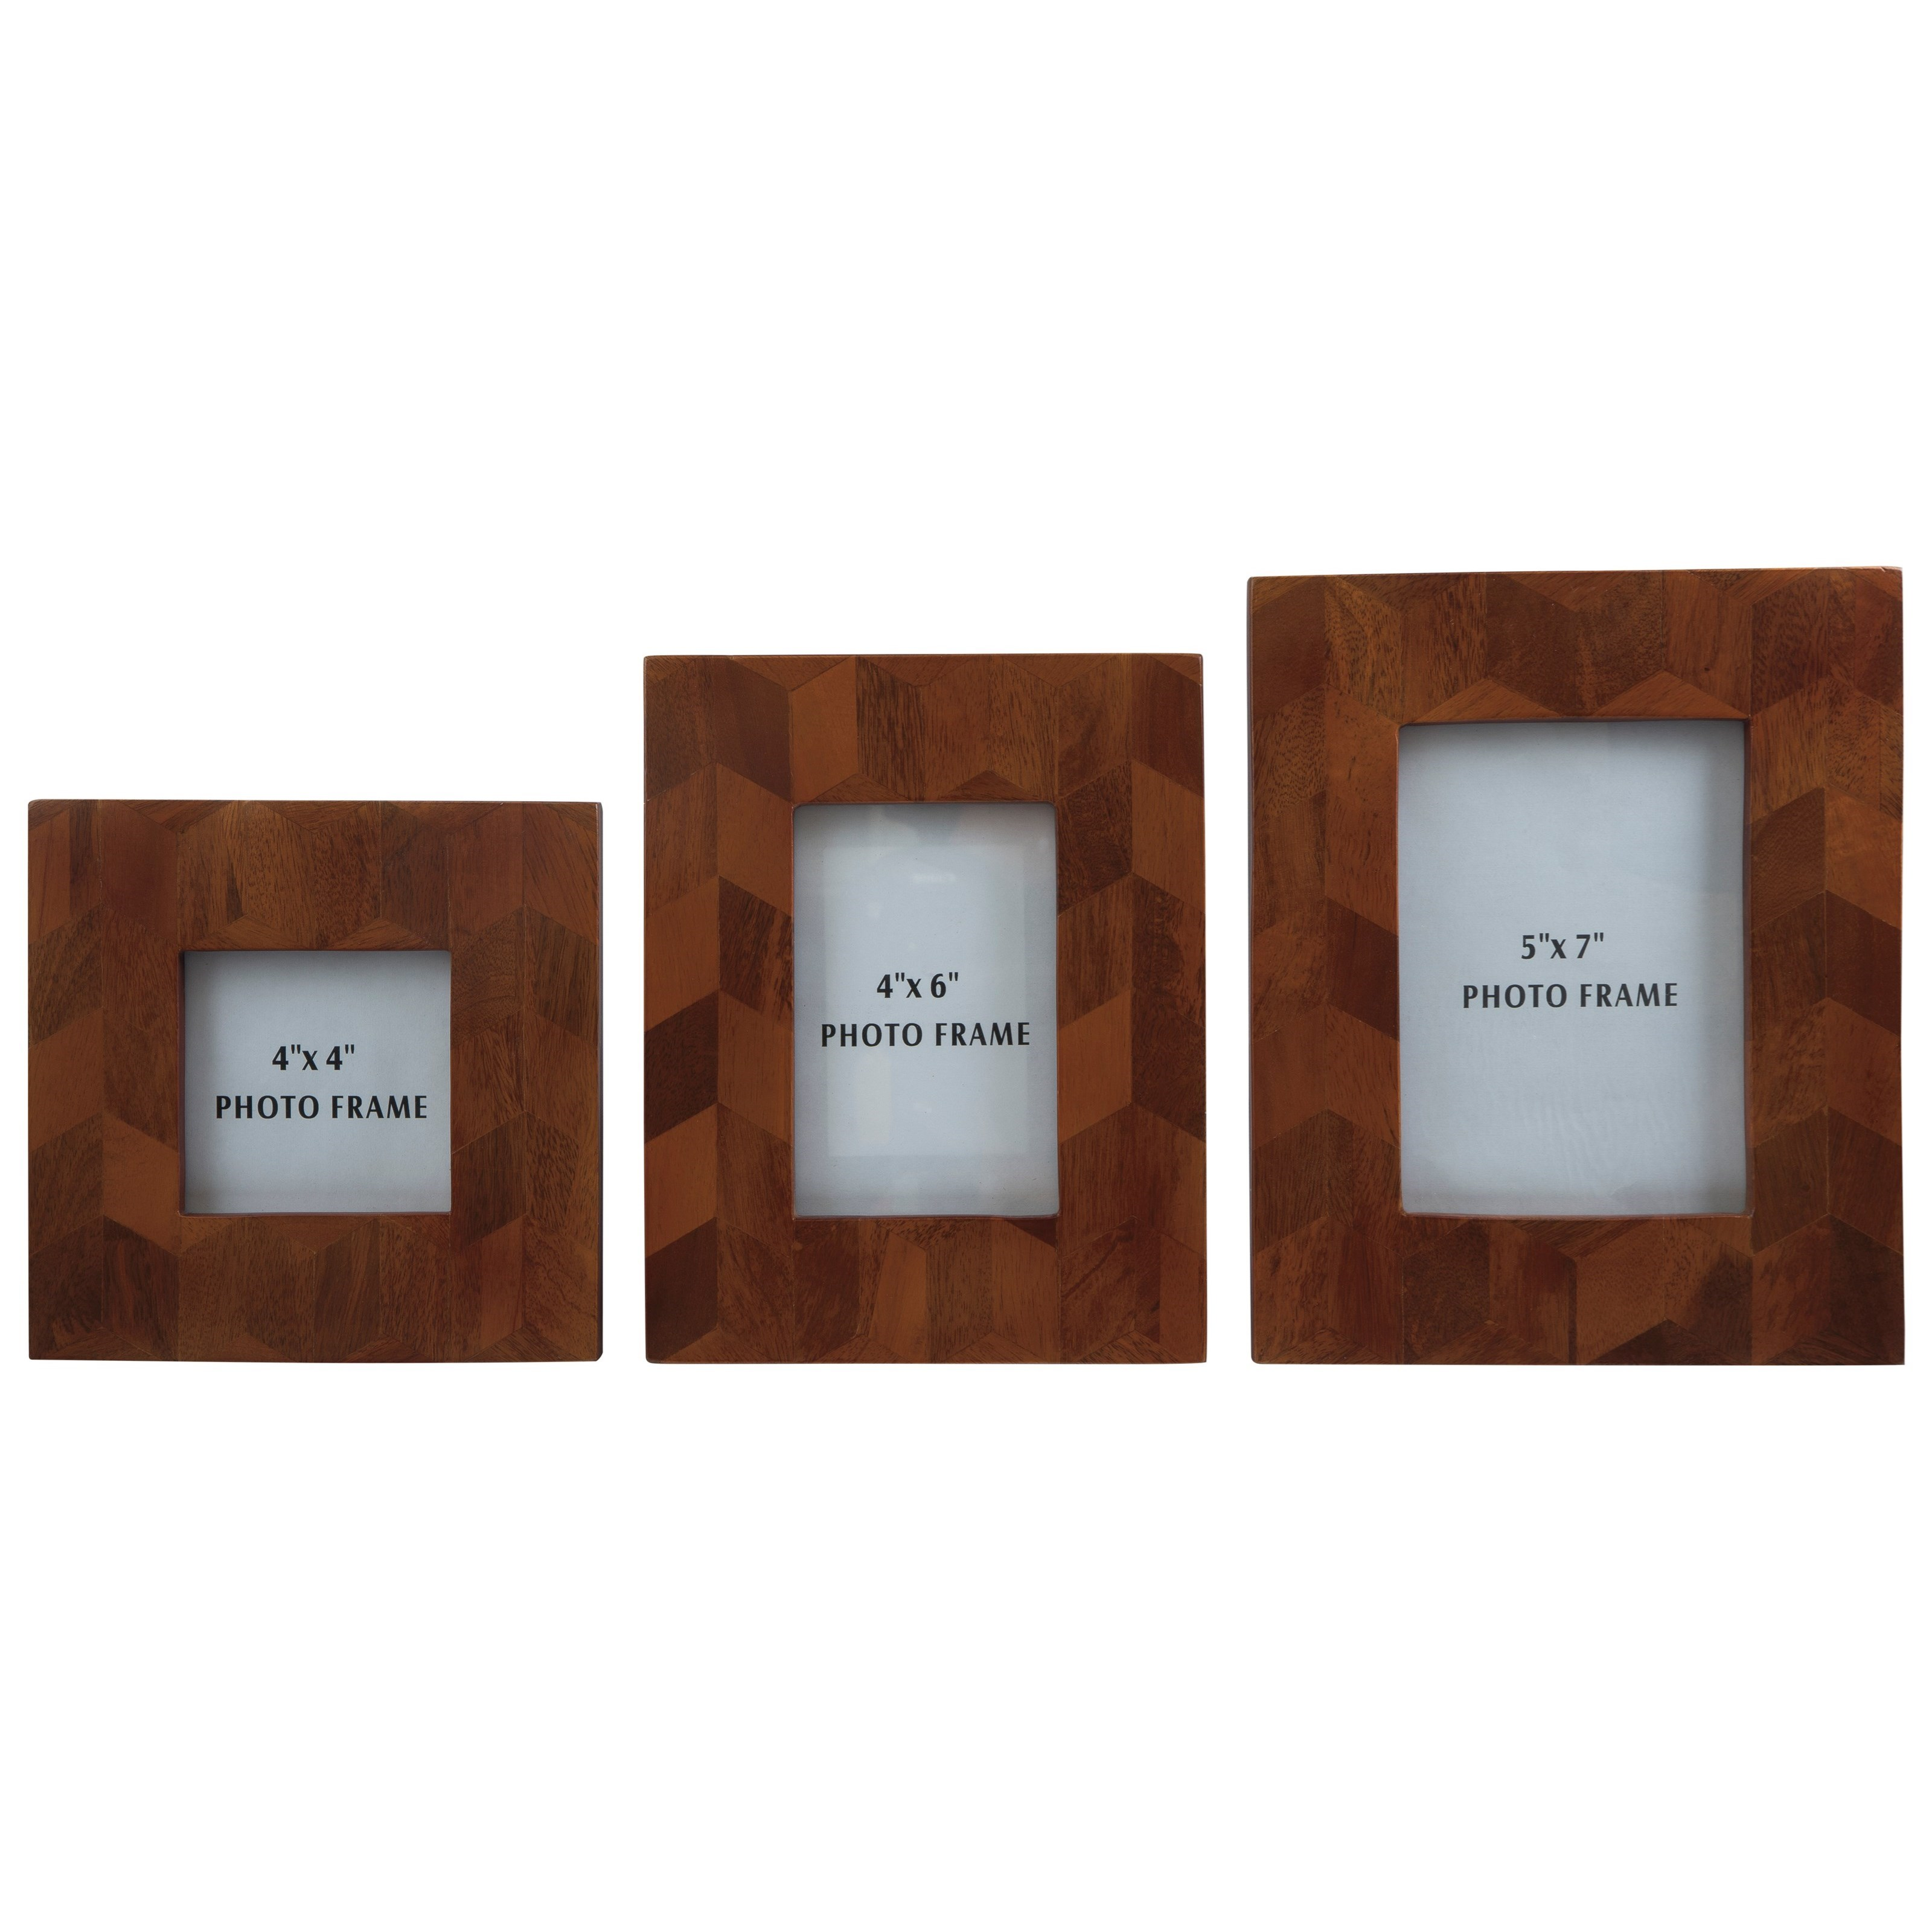 Signature Design by Ashley Accents Kabecka Brown Photo Frames (Set of 3) - Item Number: A2000171F